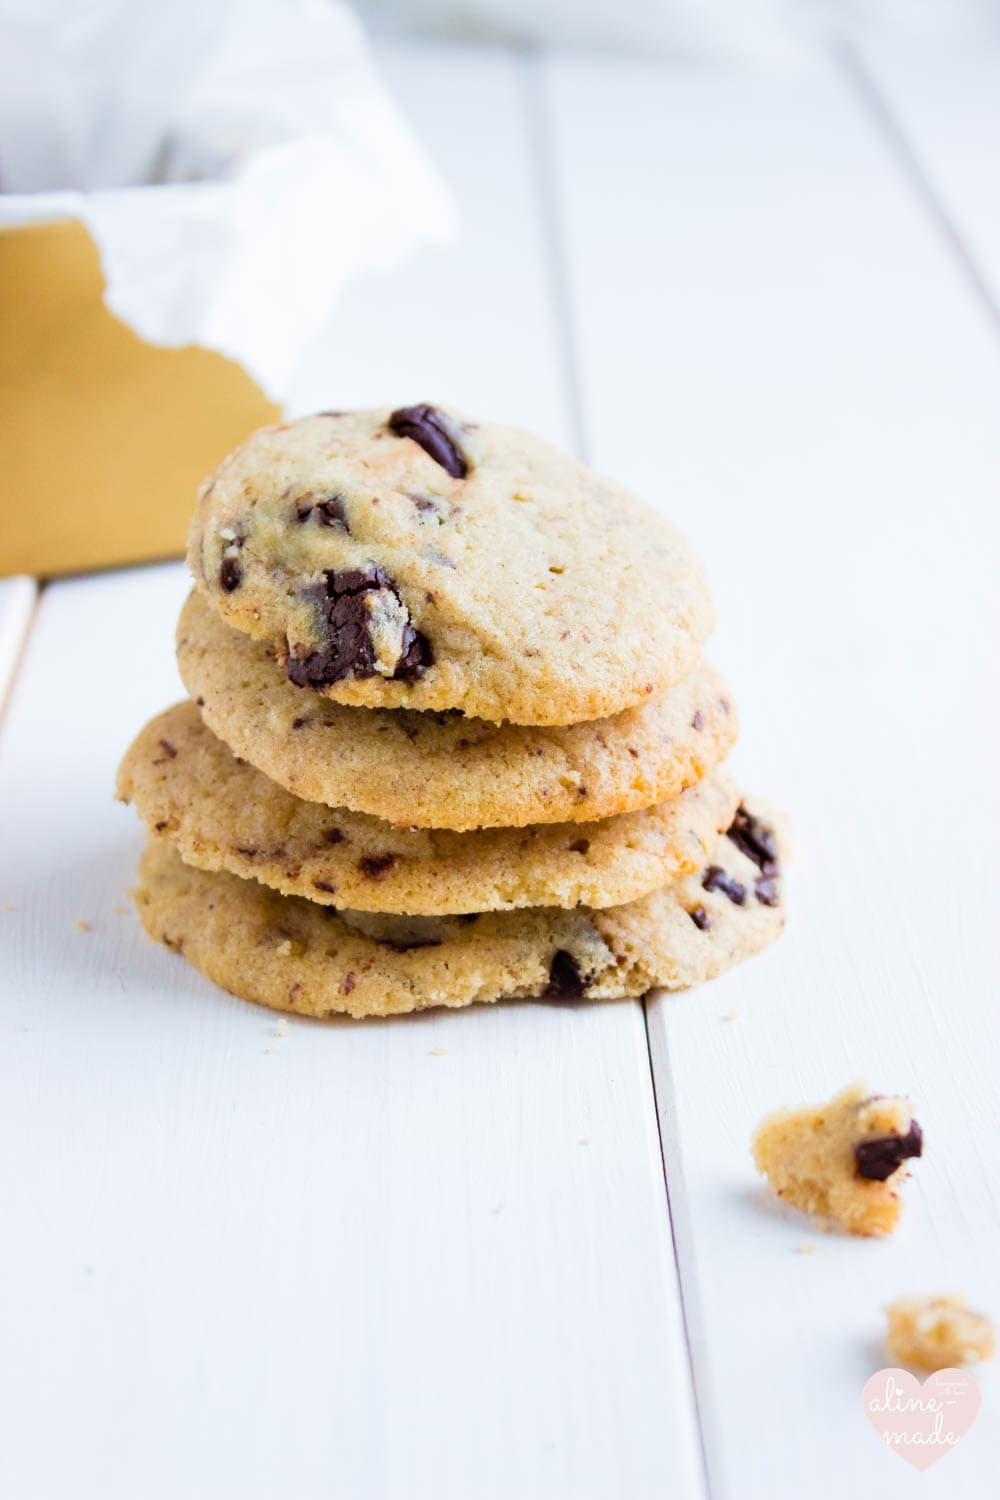 Pecan Butter Chocolate Chip Cookies - Serves 20 Cookies - Total Time 35 Minutes